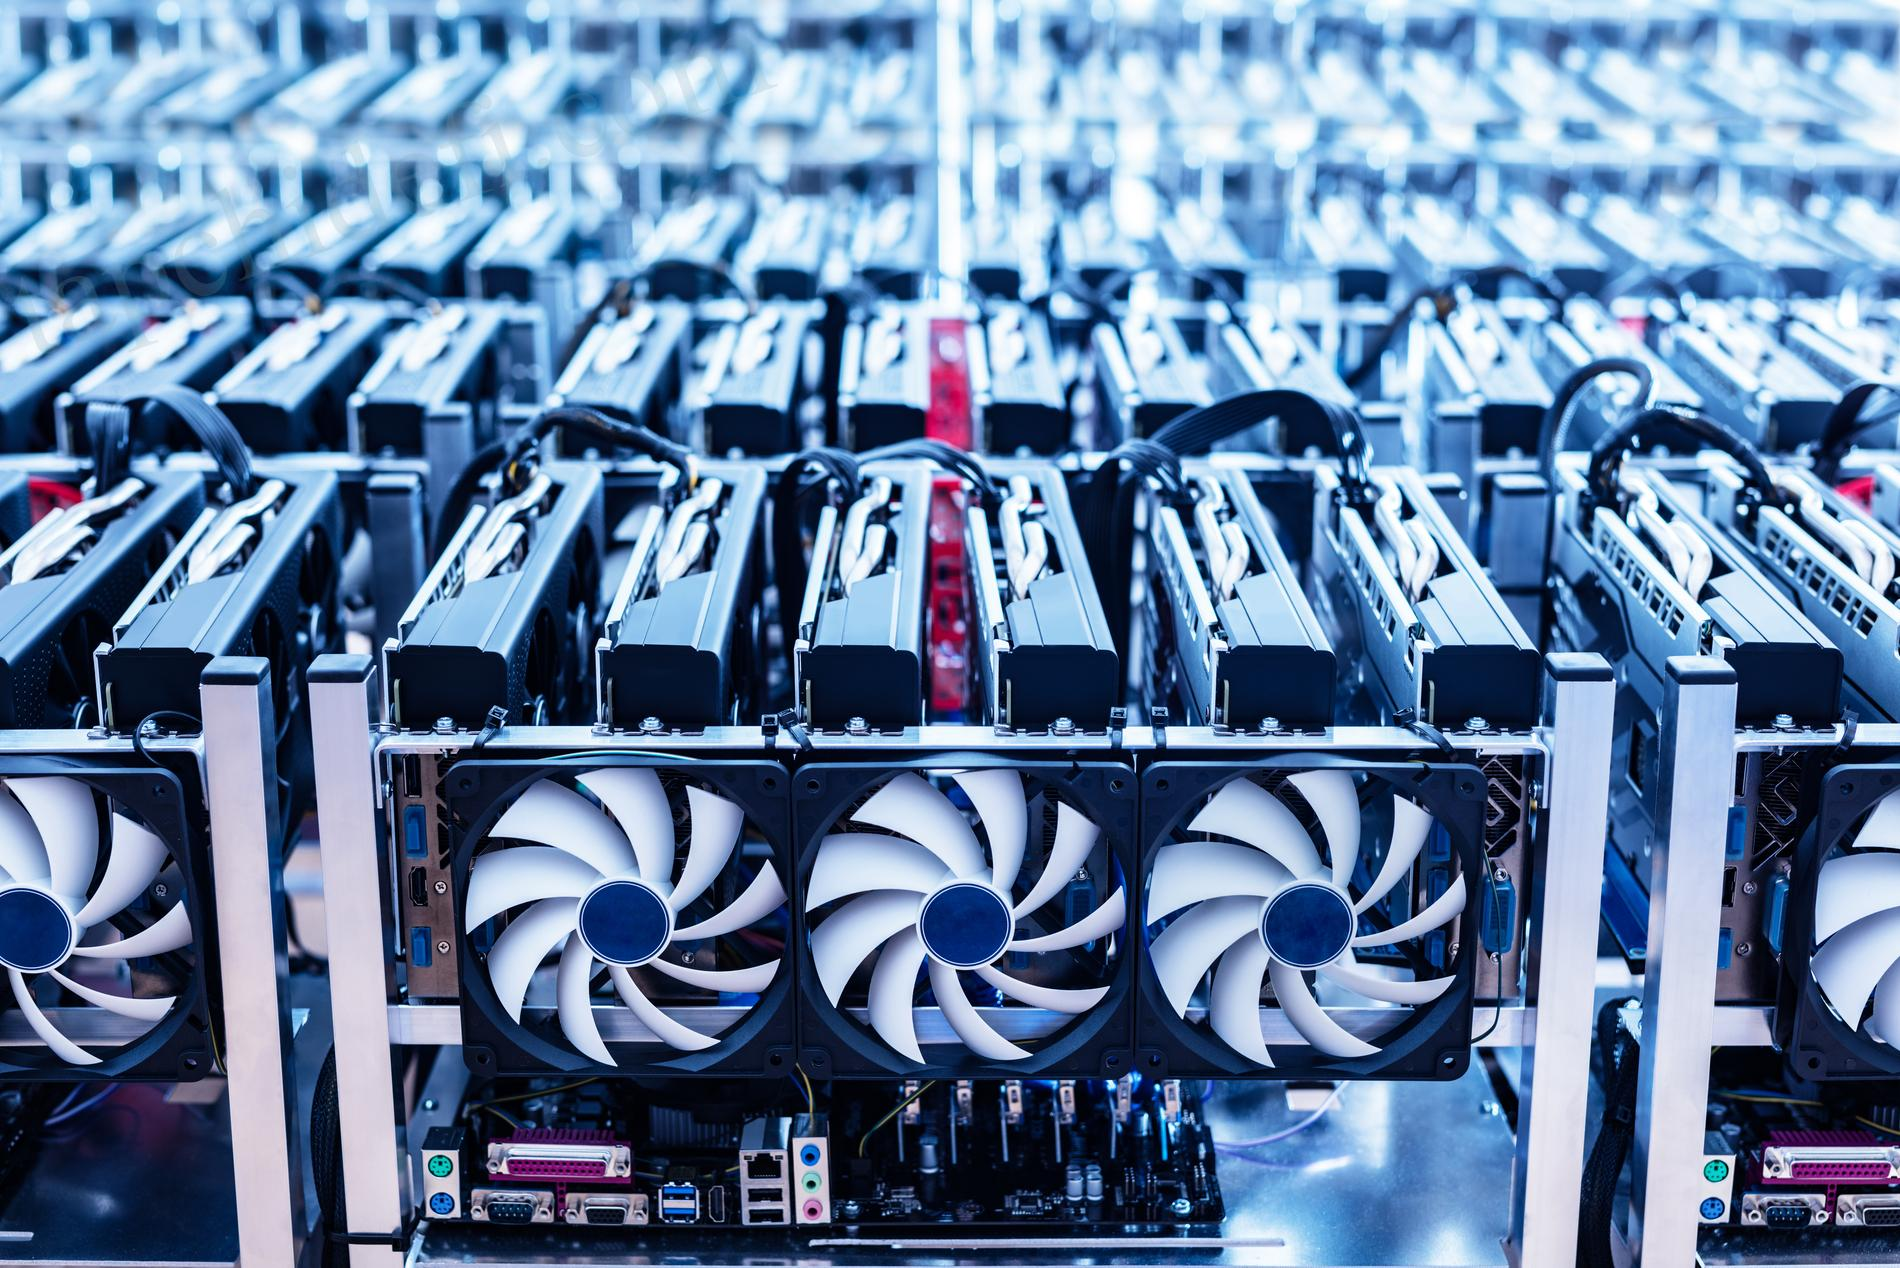 Cryptocurrency mining rigs are selling like junk in China